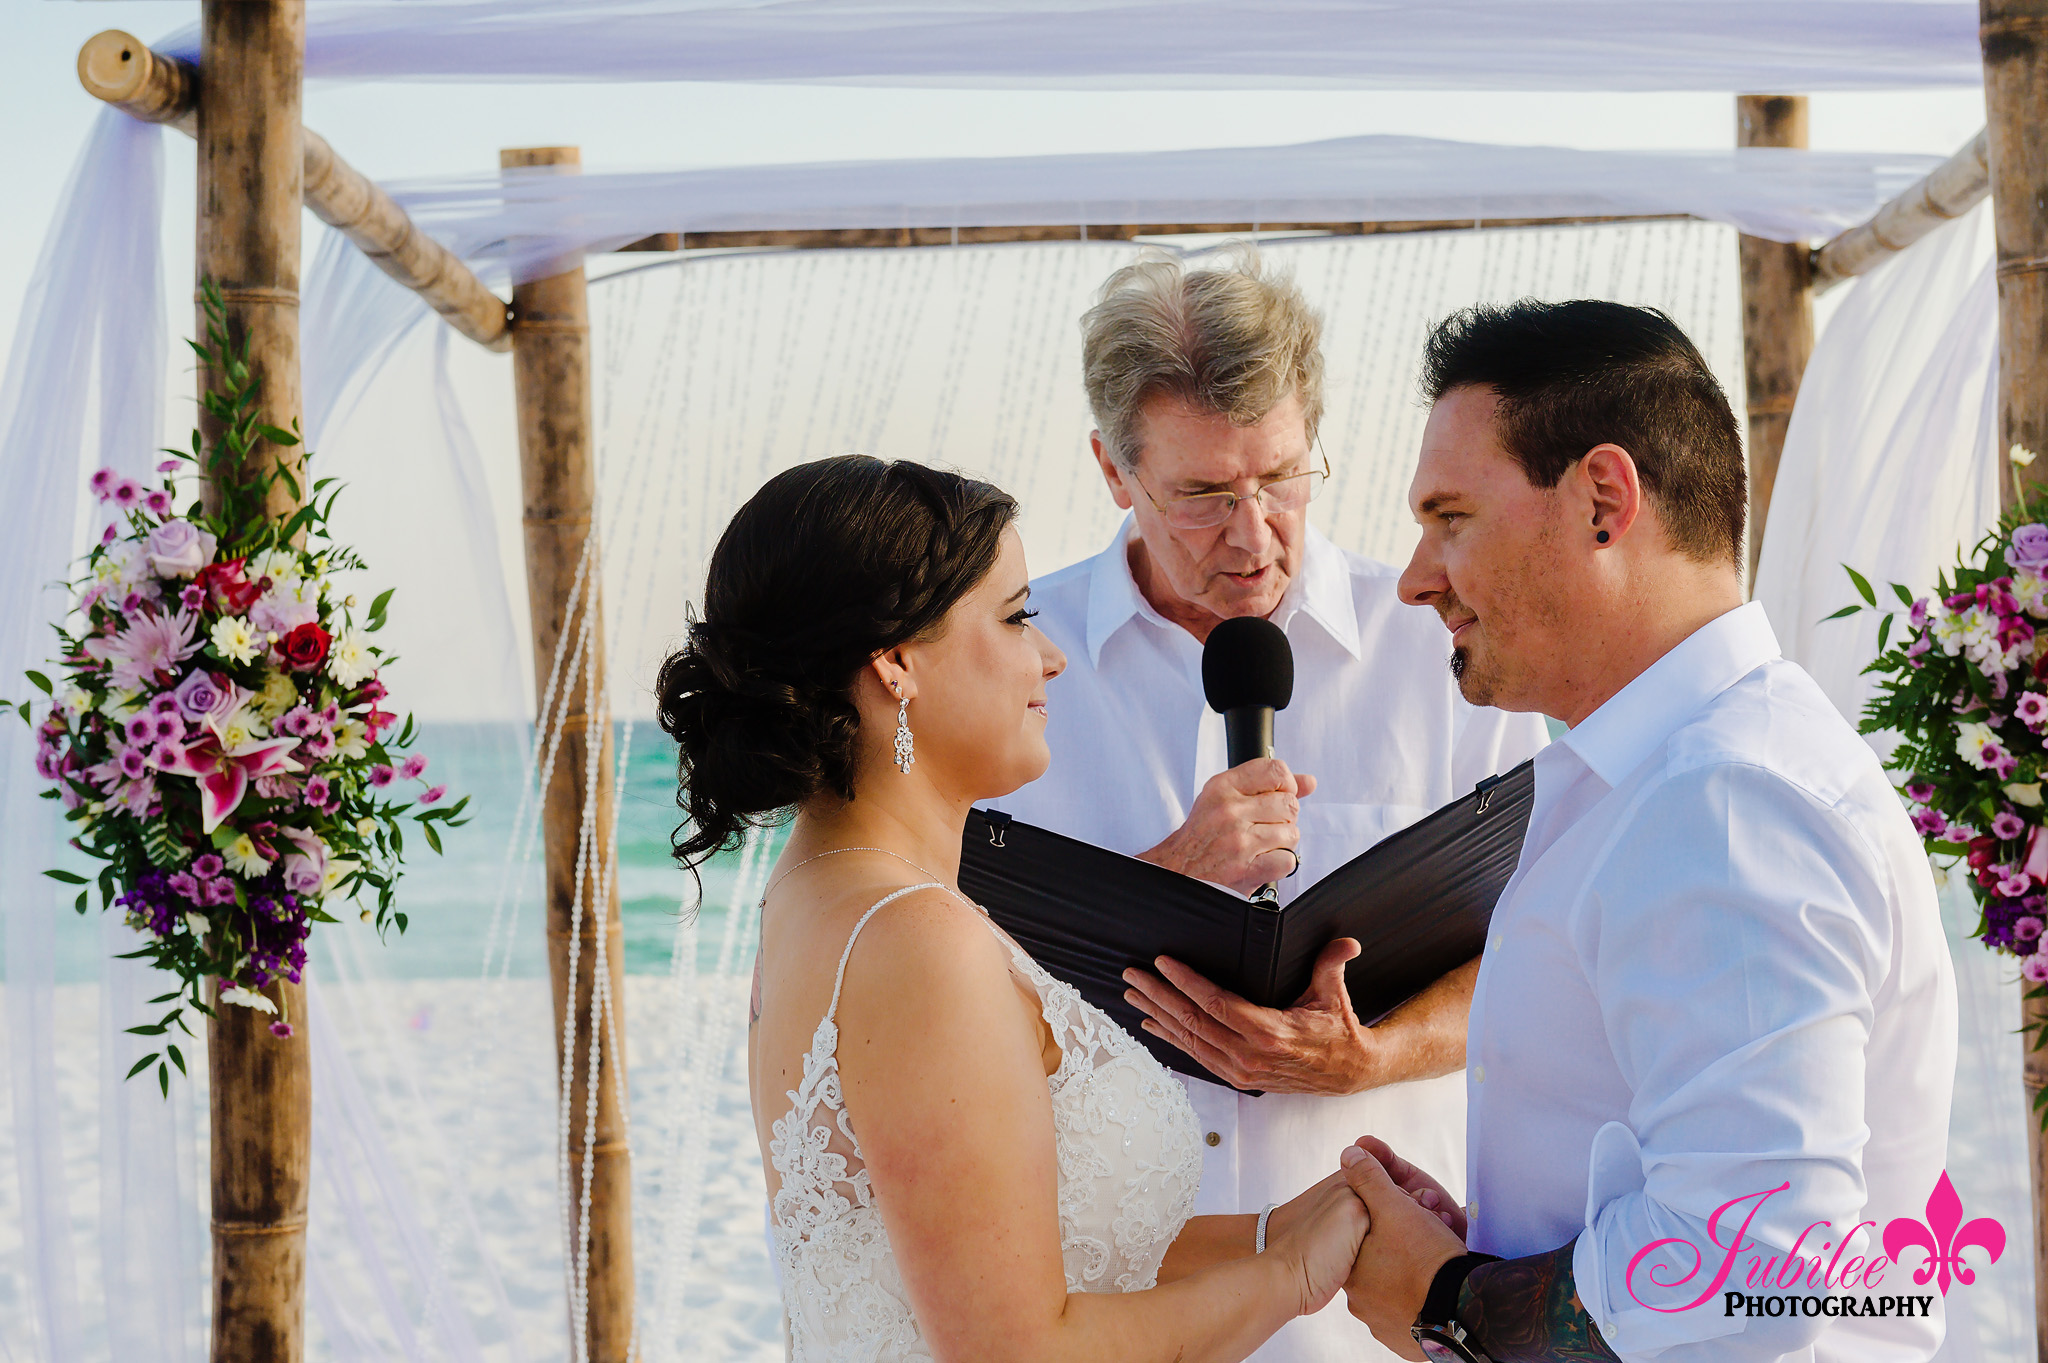 30A_Wedding_Photographer_7162